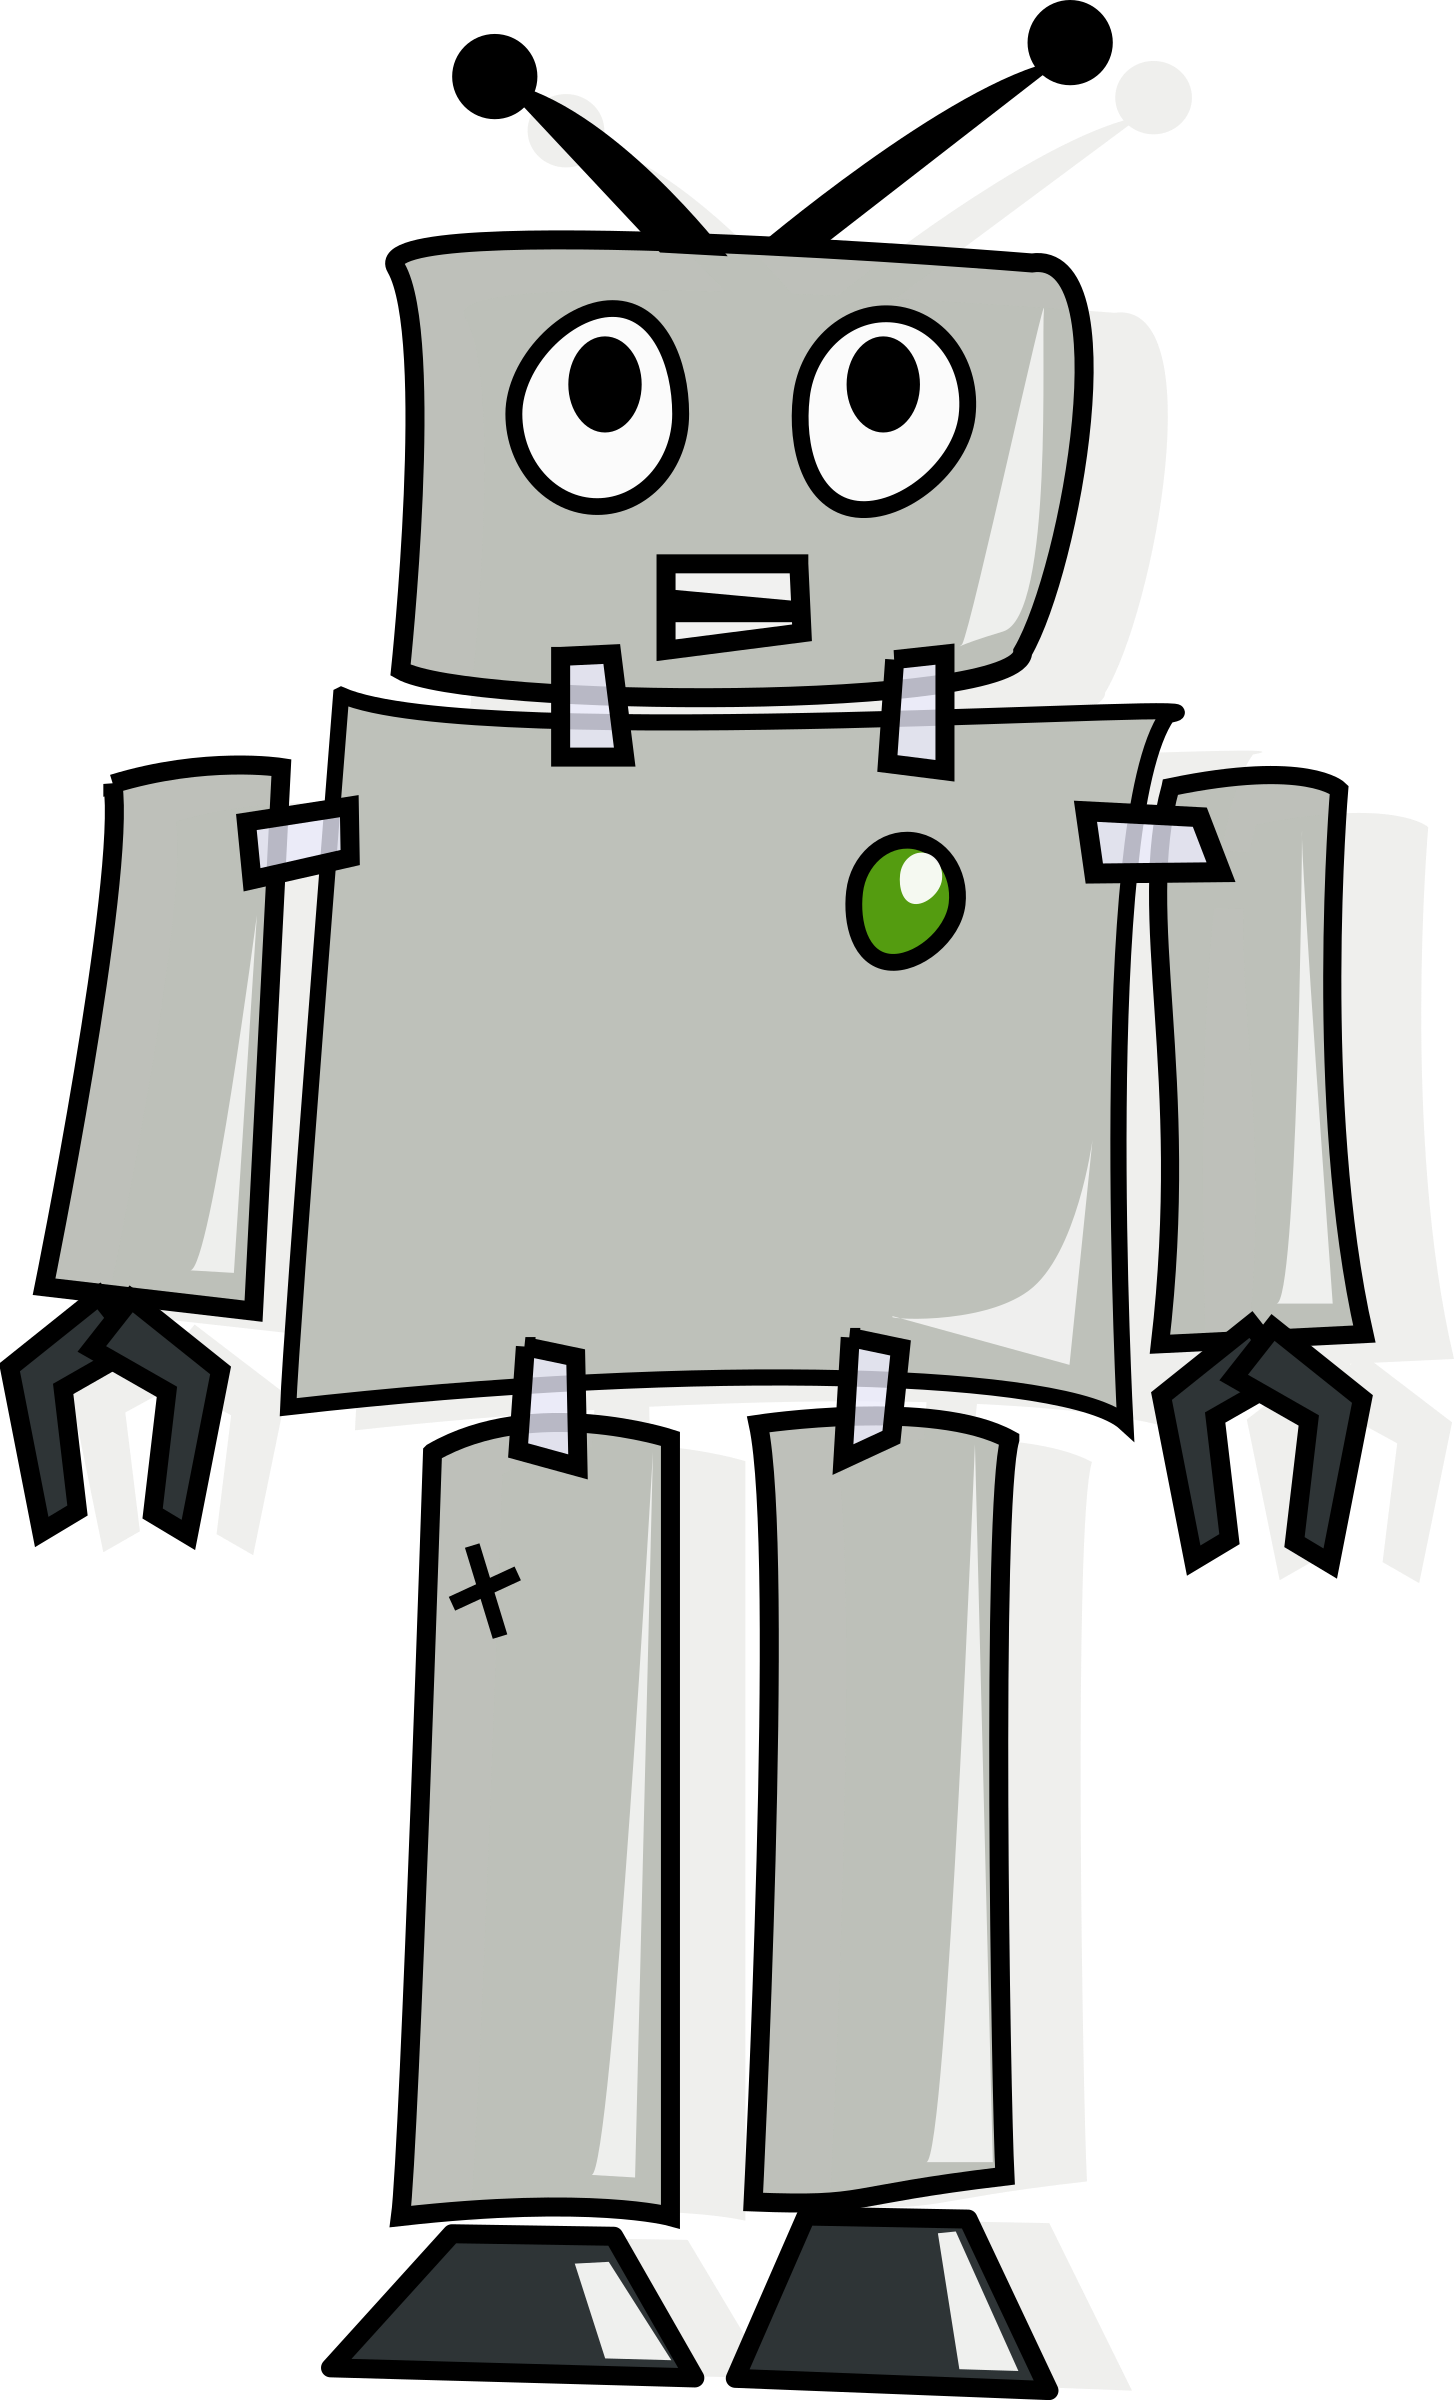 Robot png image purepng. Electronics clipart style